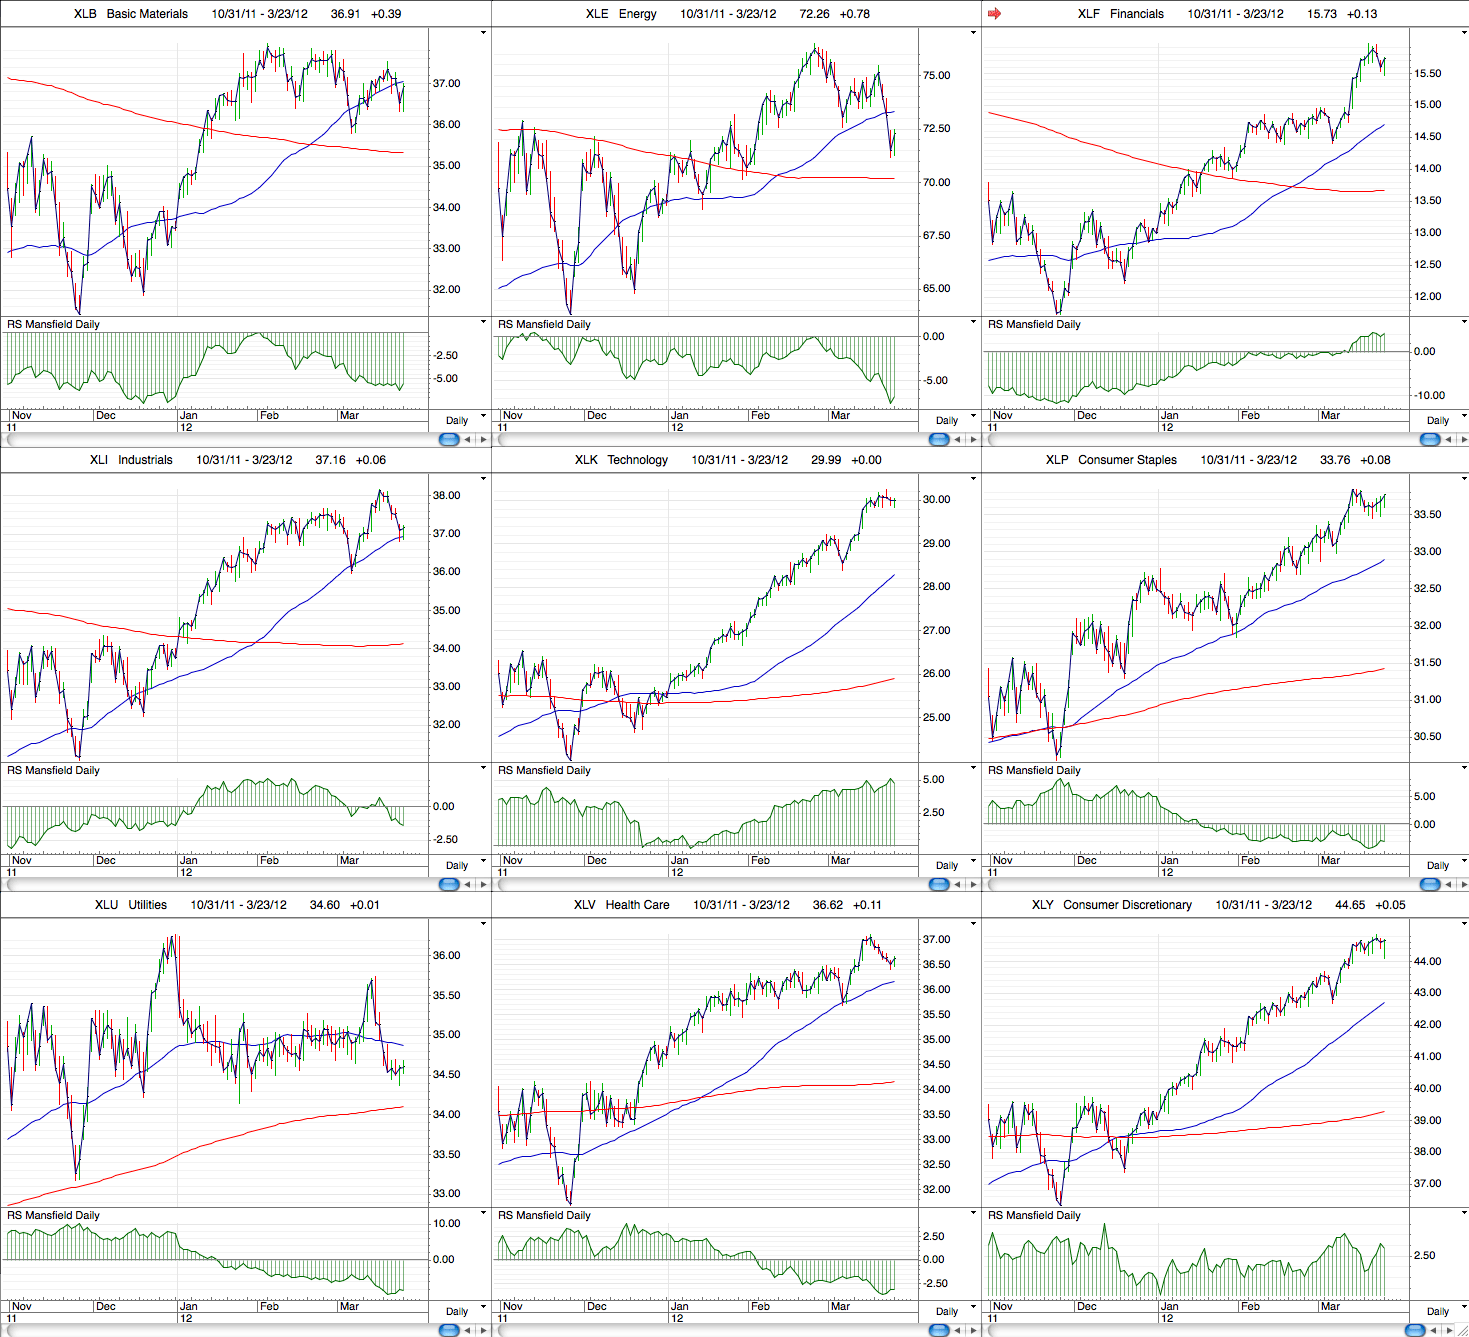 us_industry_sectors_daily_23_3_12.png